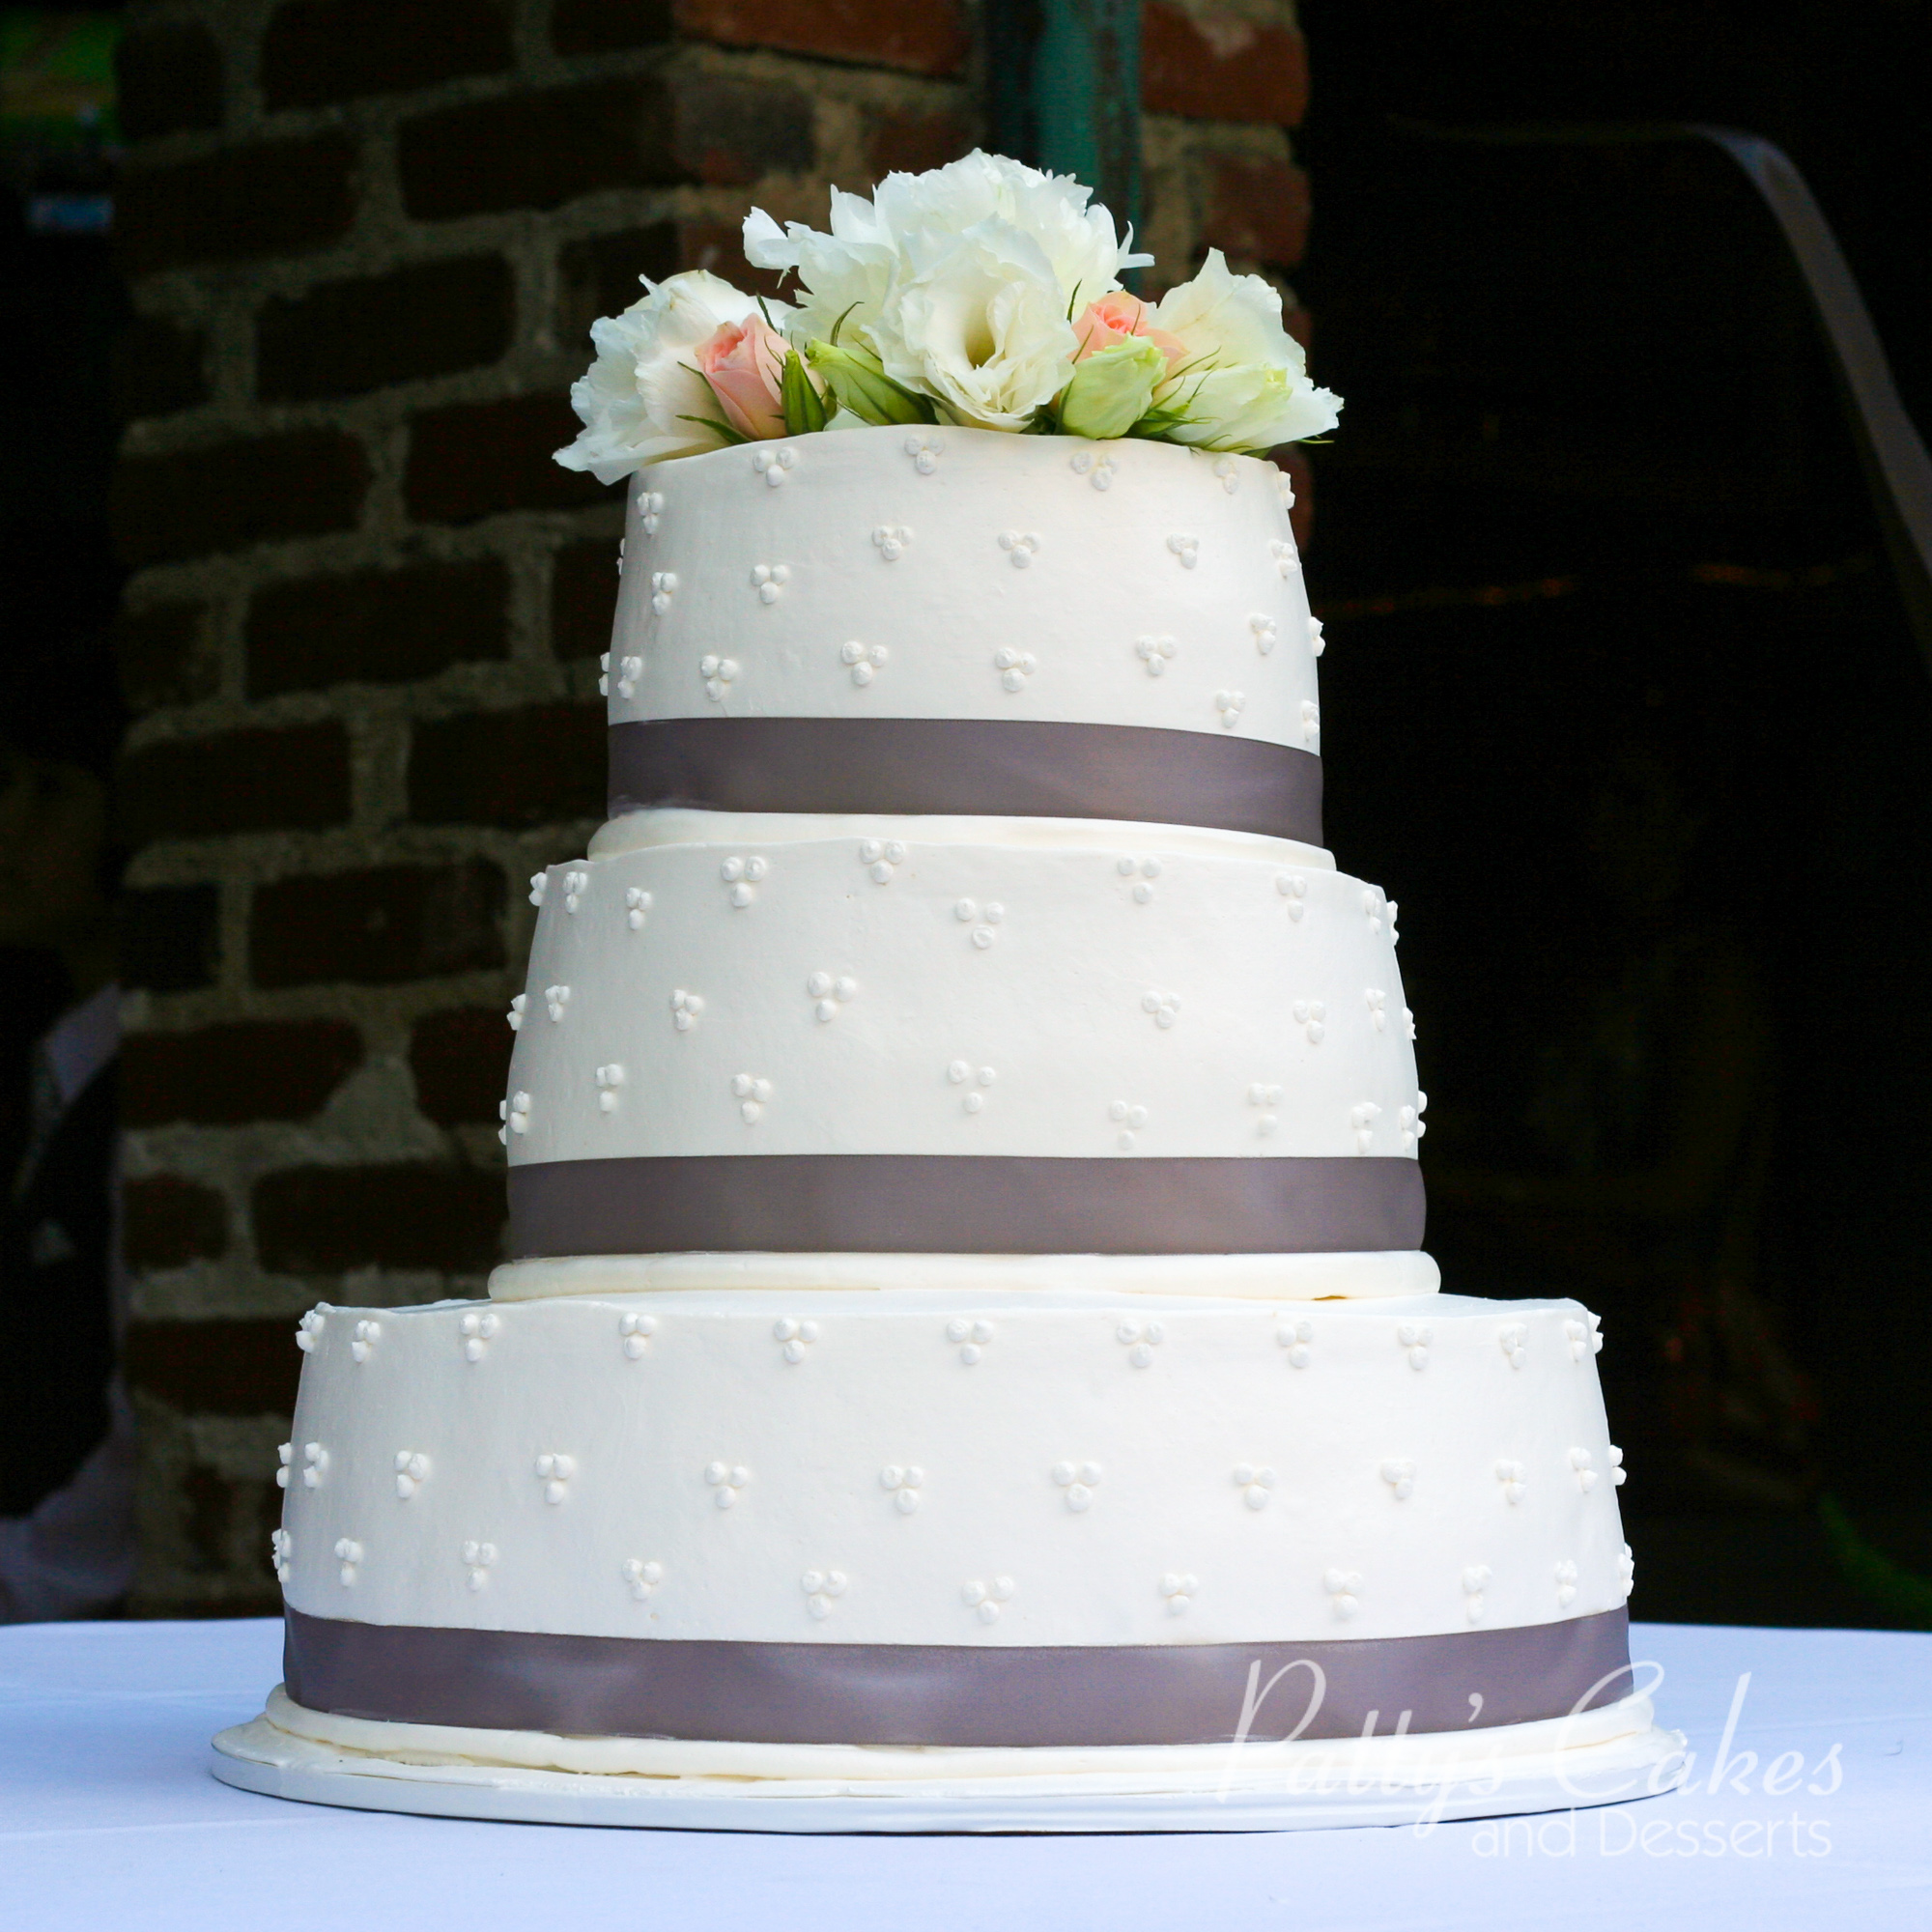 Simple Round Cake Images : Simple Round Wedding Cake www.imgkid.com - The Image Kid ...